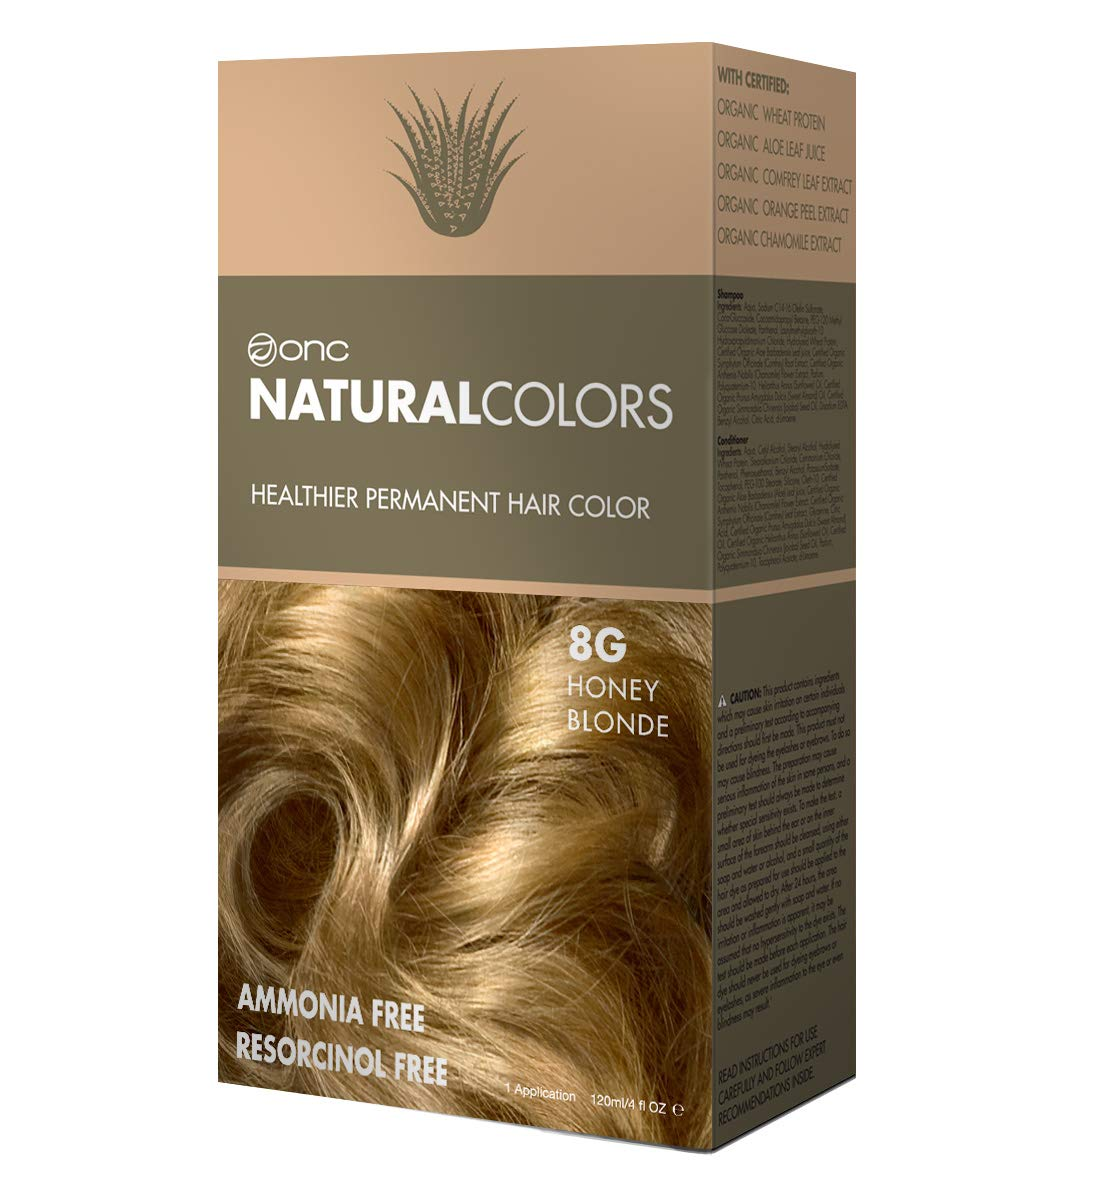 ONC NATURALCOLORS 8G Honey Blonde Healthier Permanent Hair Color Dye 4 fl. oz. (120 mL) with Certified Organic Ingredients, Ammonia-free, Resorcinol-free, Paraben-free, Low pH, Salon Quality, Easy to by ONC NATURALCOLORS